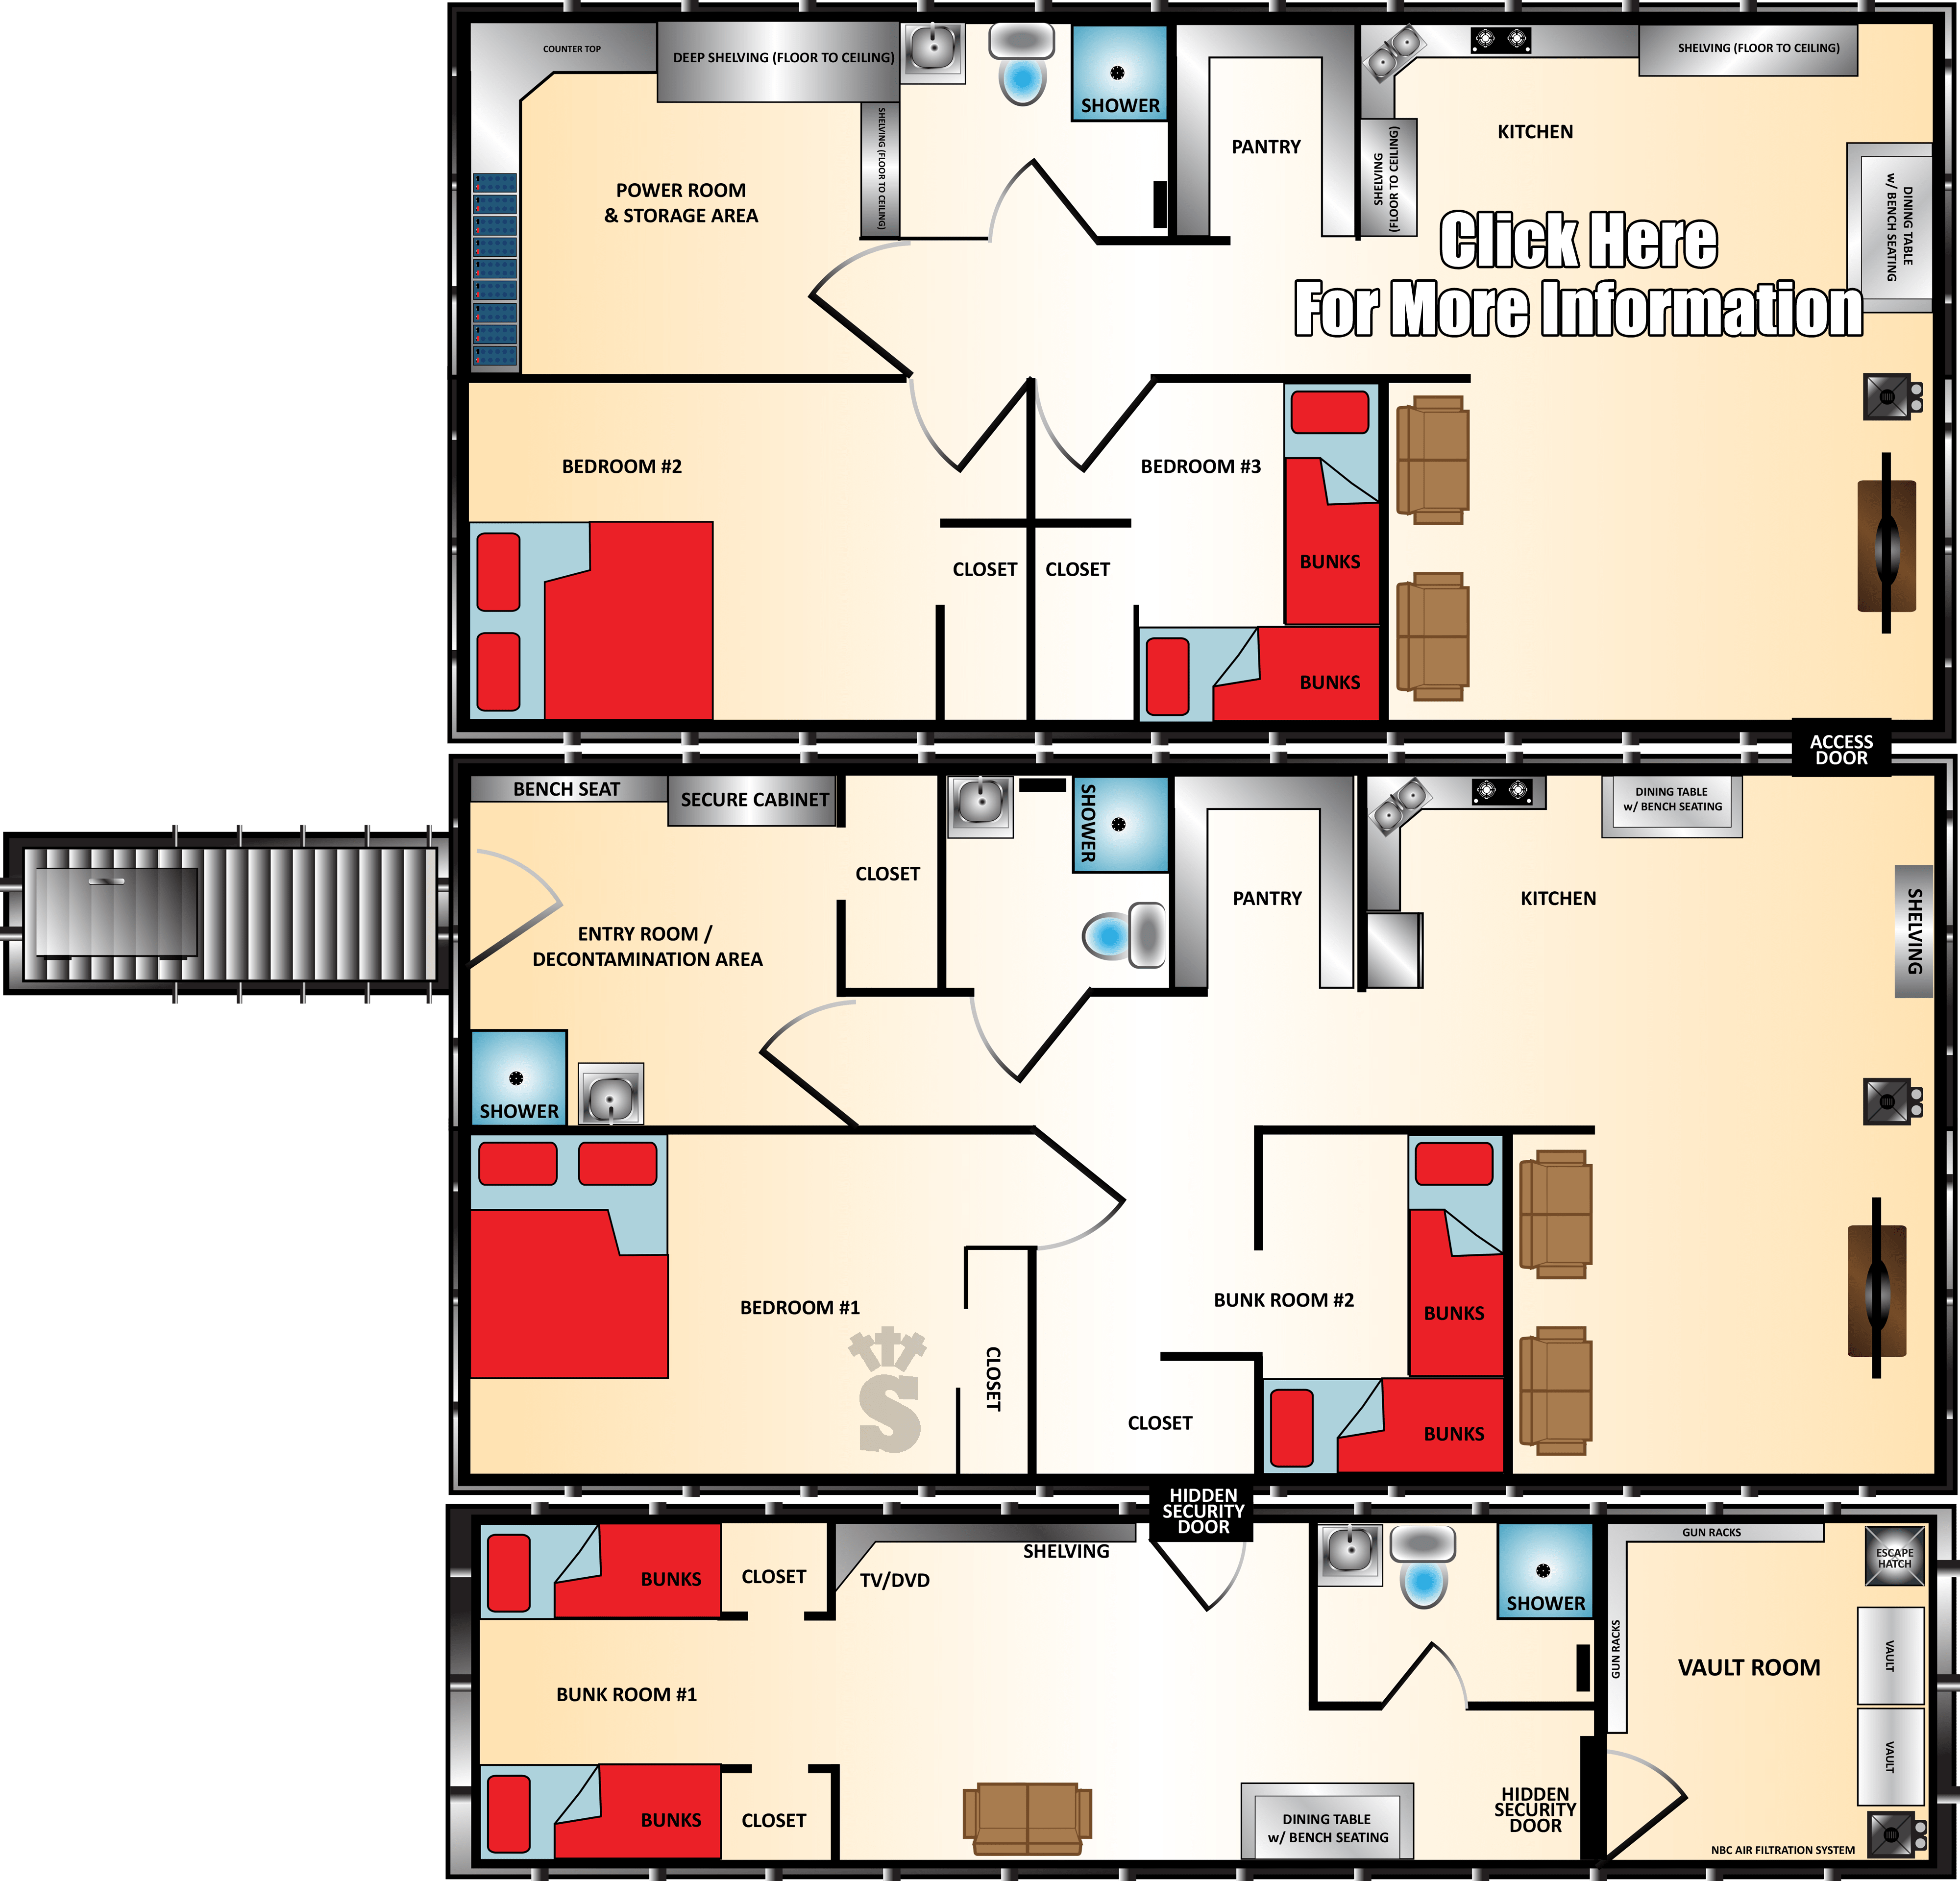 Bunker Floor Plans And Pricing For Models Of Various Sizes Rising S Bunkers Also Makes Custom Bunkers To Suit Every Need A Bomb Shelter Floor Plans Bunker Home